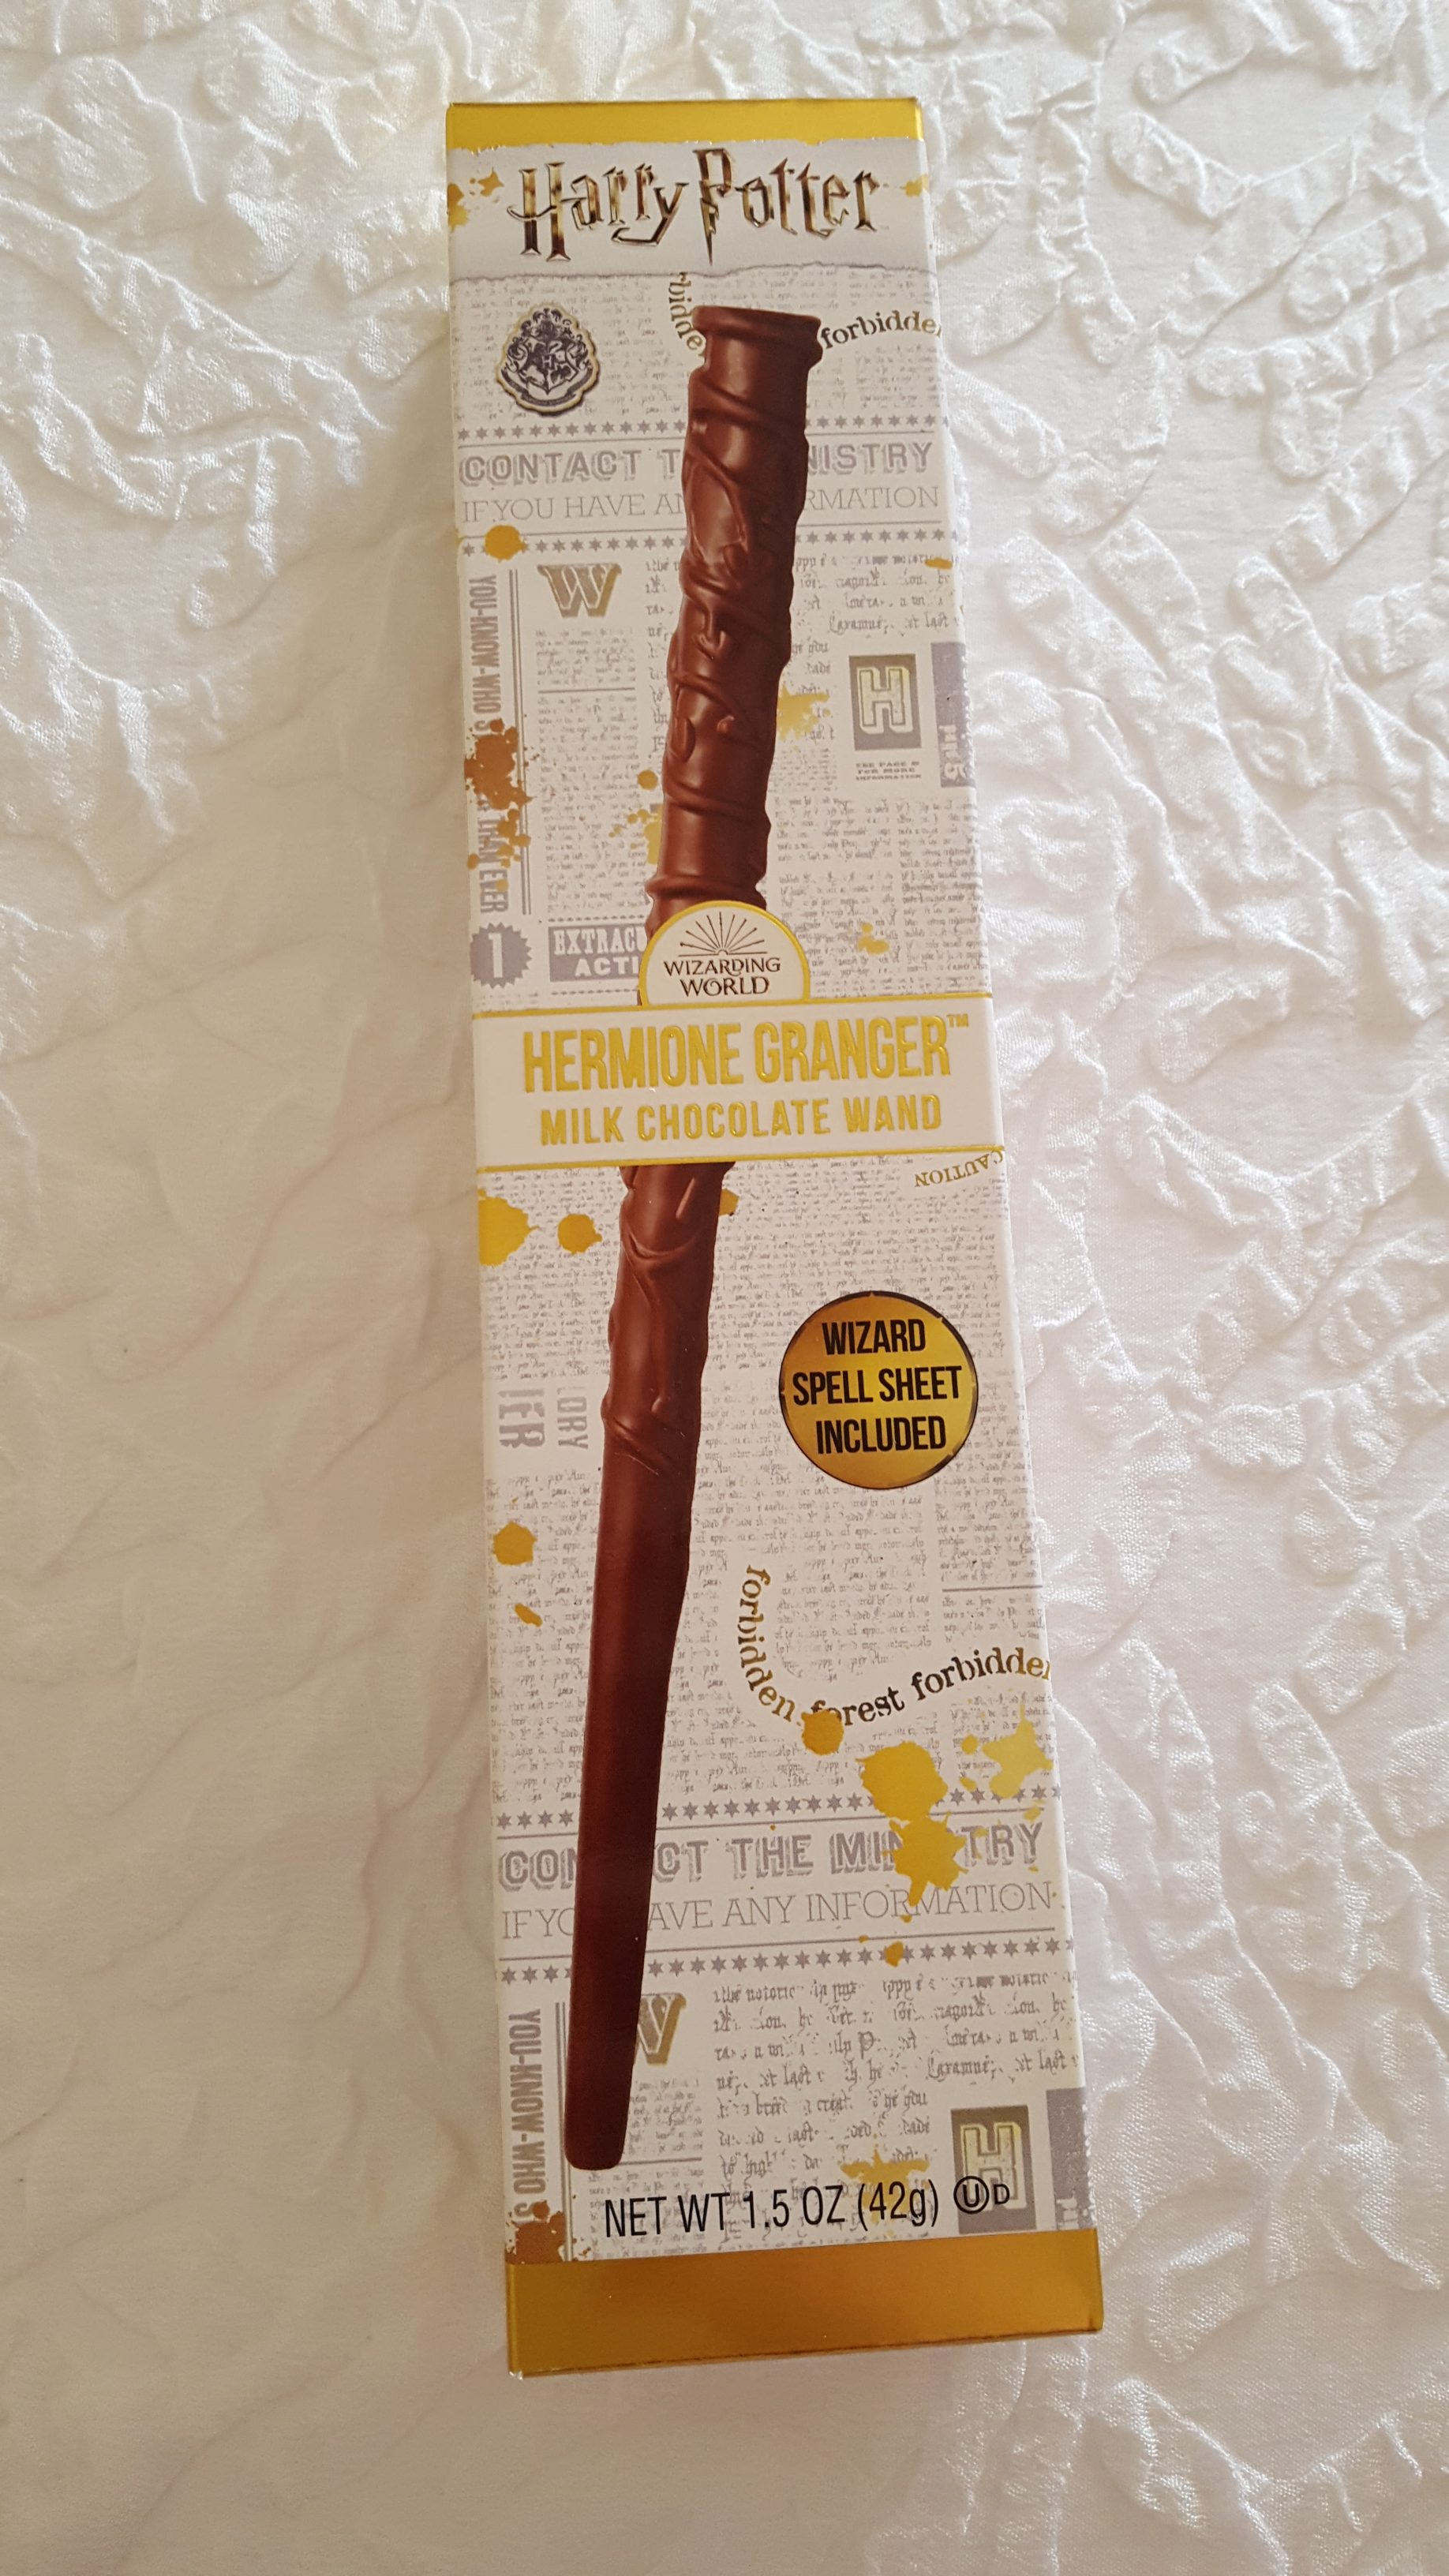 Jelly Belly Hermione Granger chocolate wand box, front view showing the vine detail on her wand